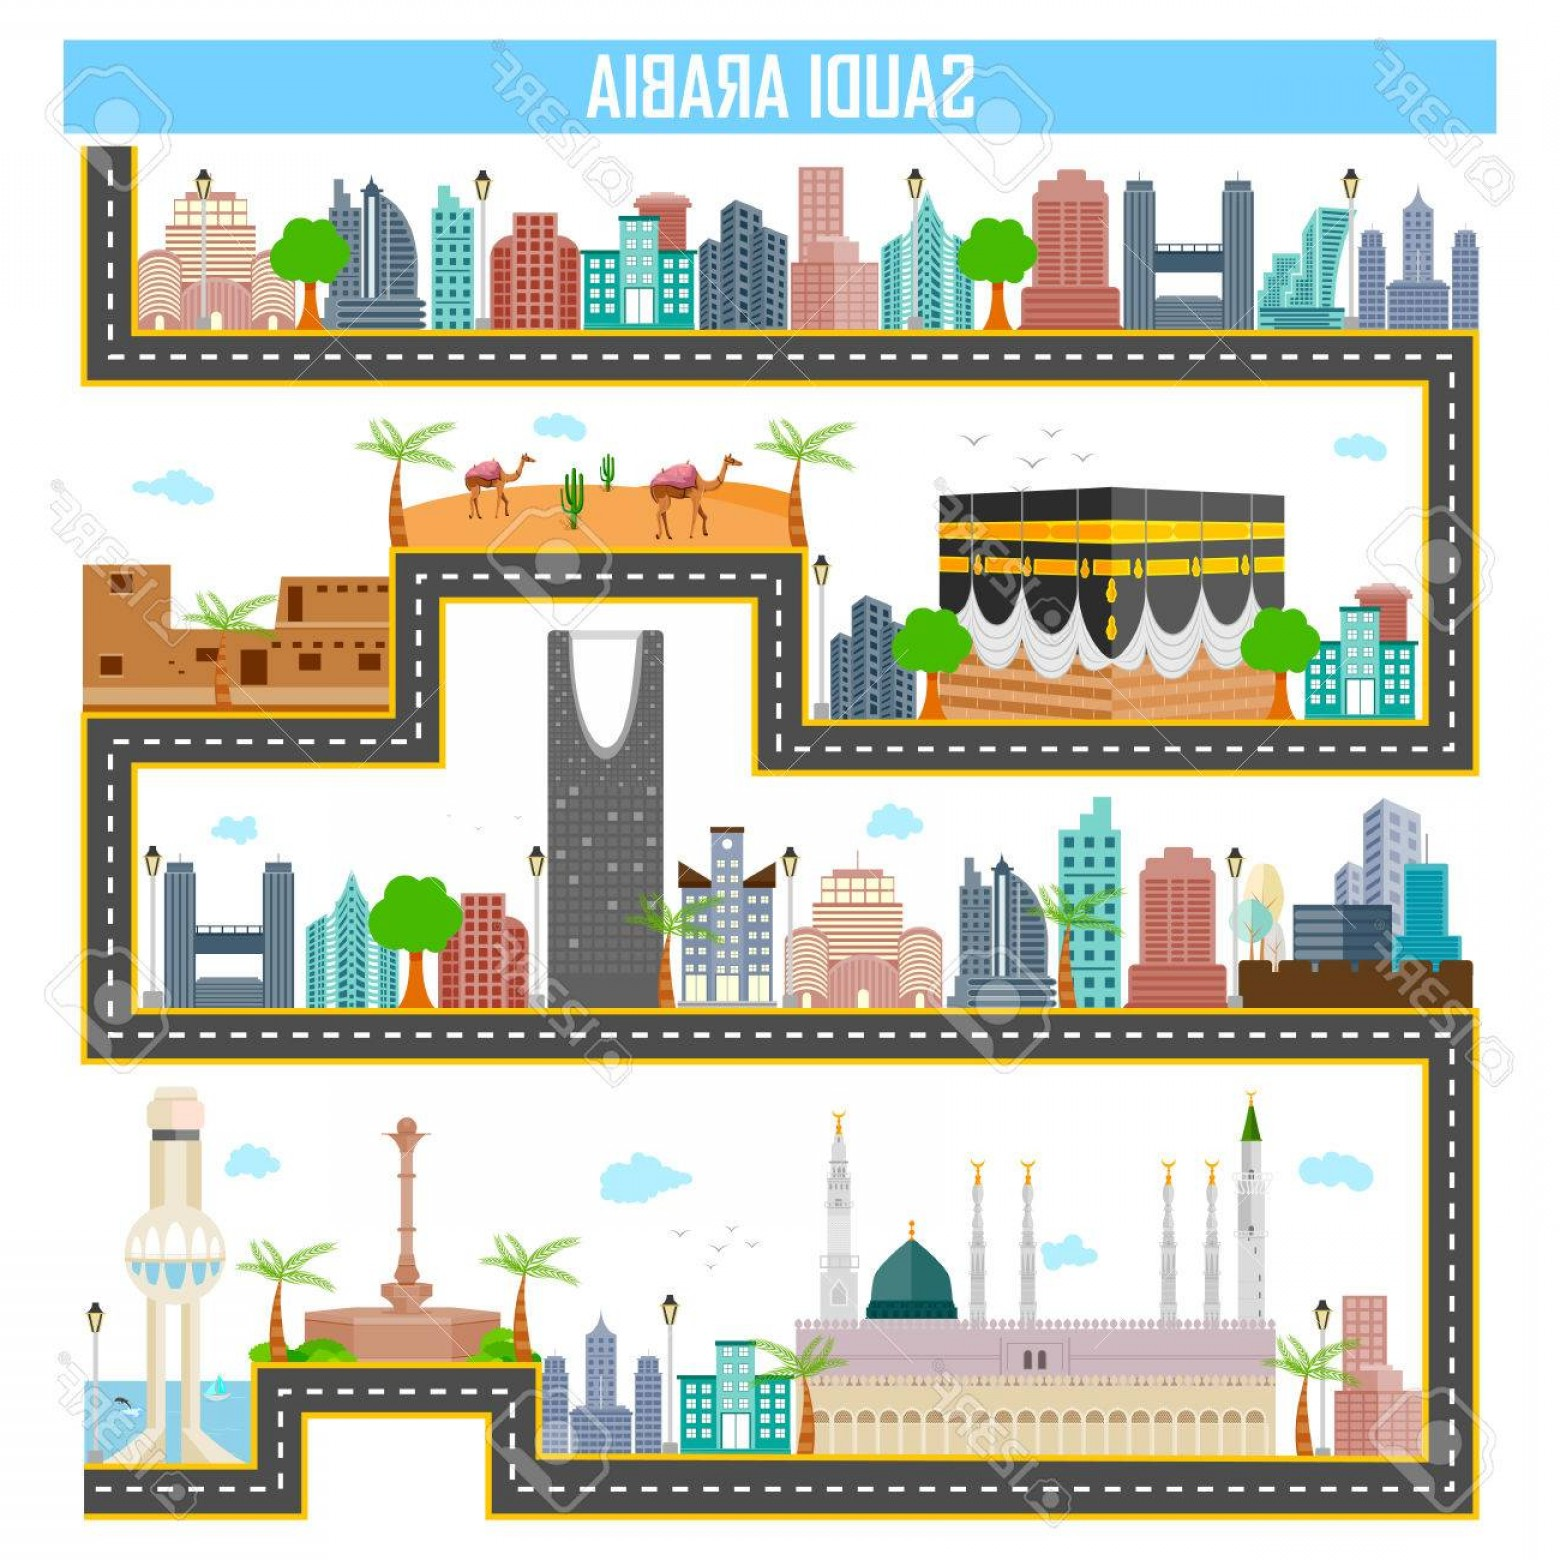 Famous Easy Vectors: Photostock Vector Easy To Edit Vector Illustration Of Cityscape With Famous Monument And Building Of Saudi Arabia